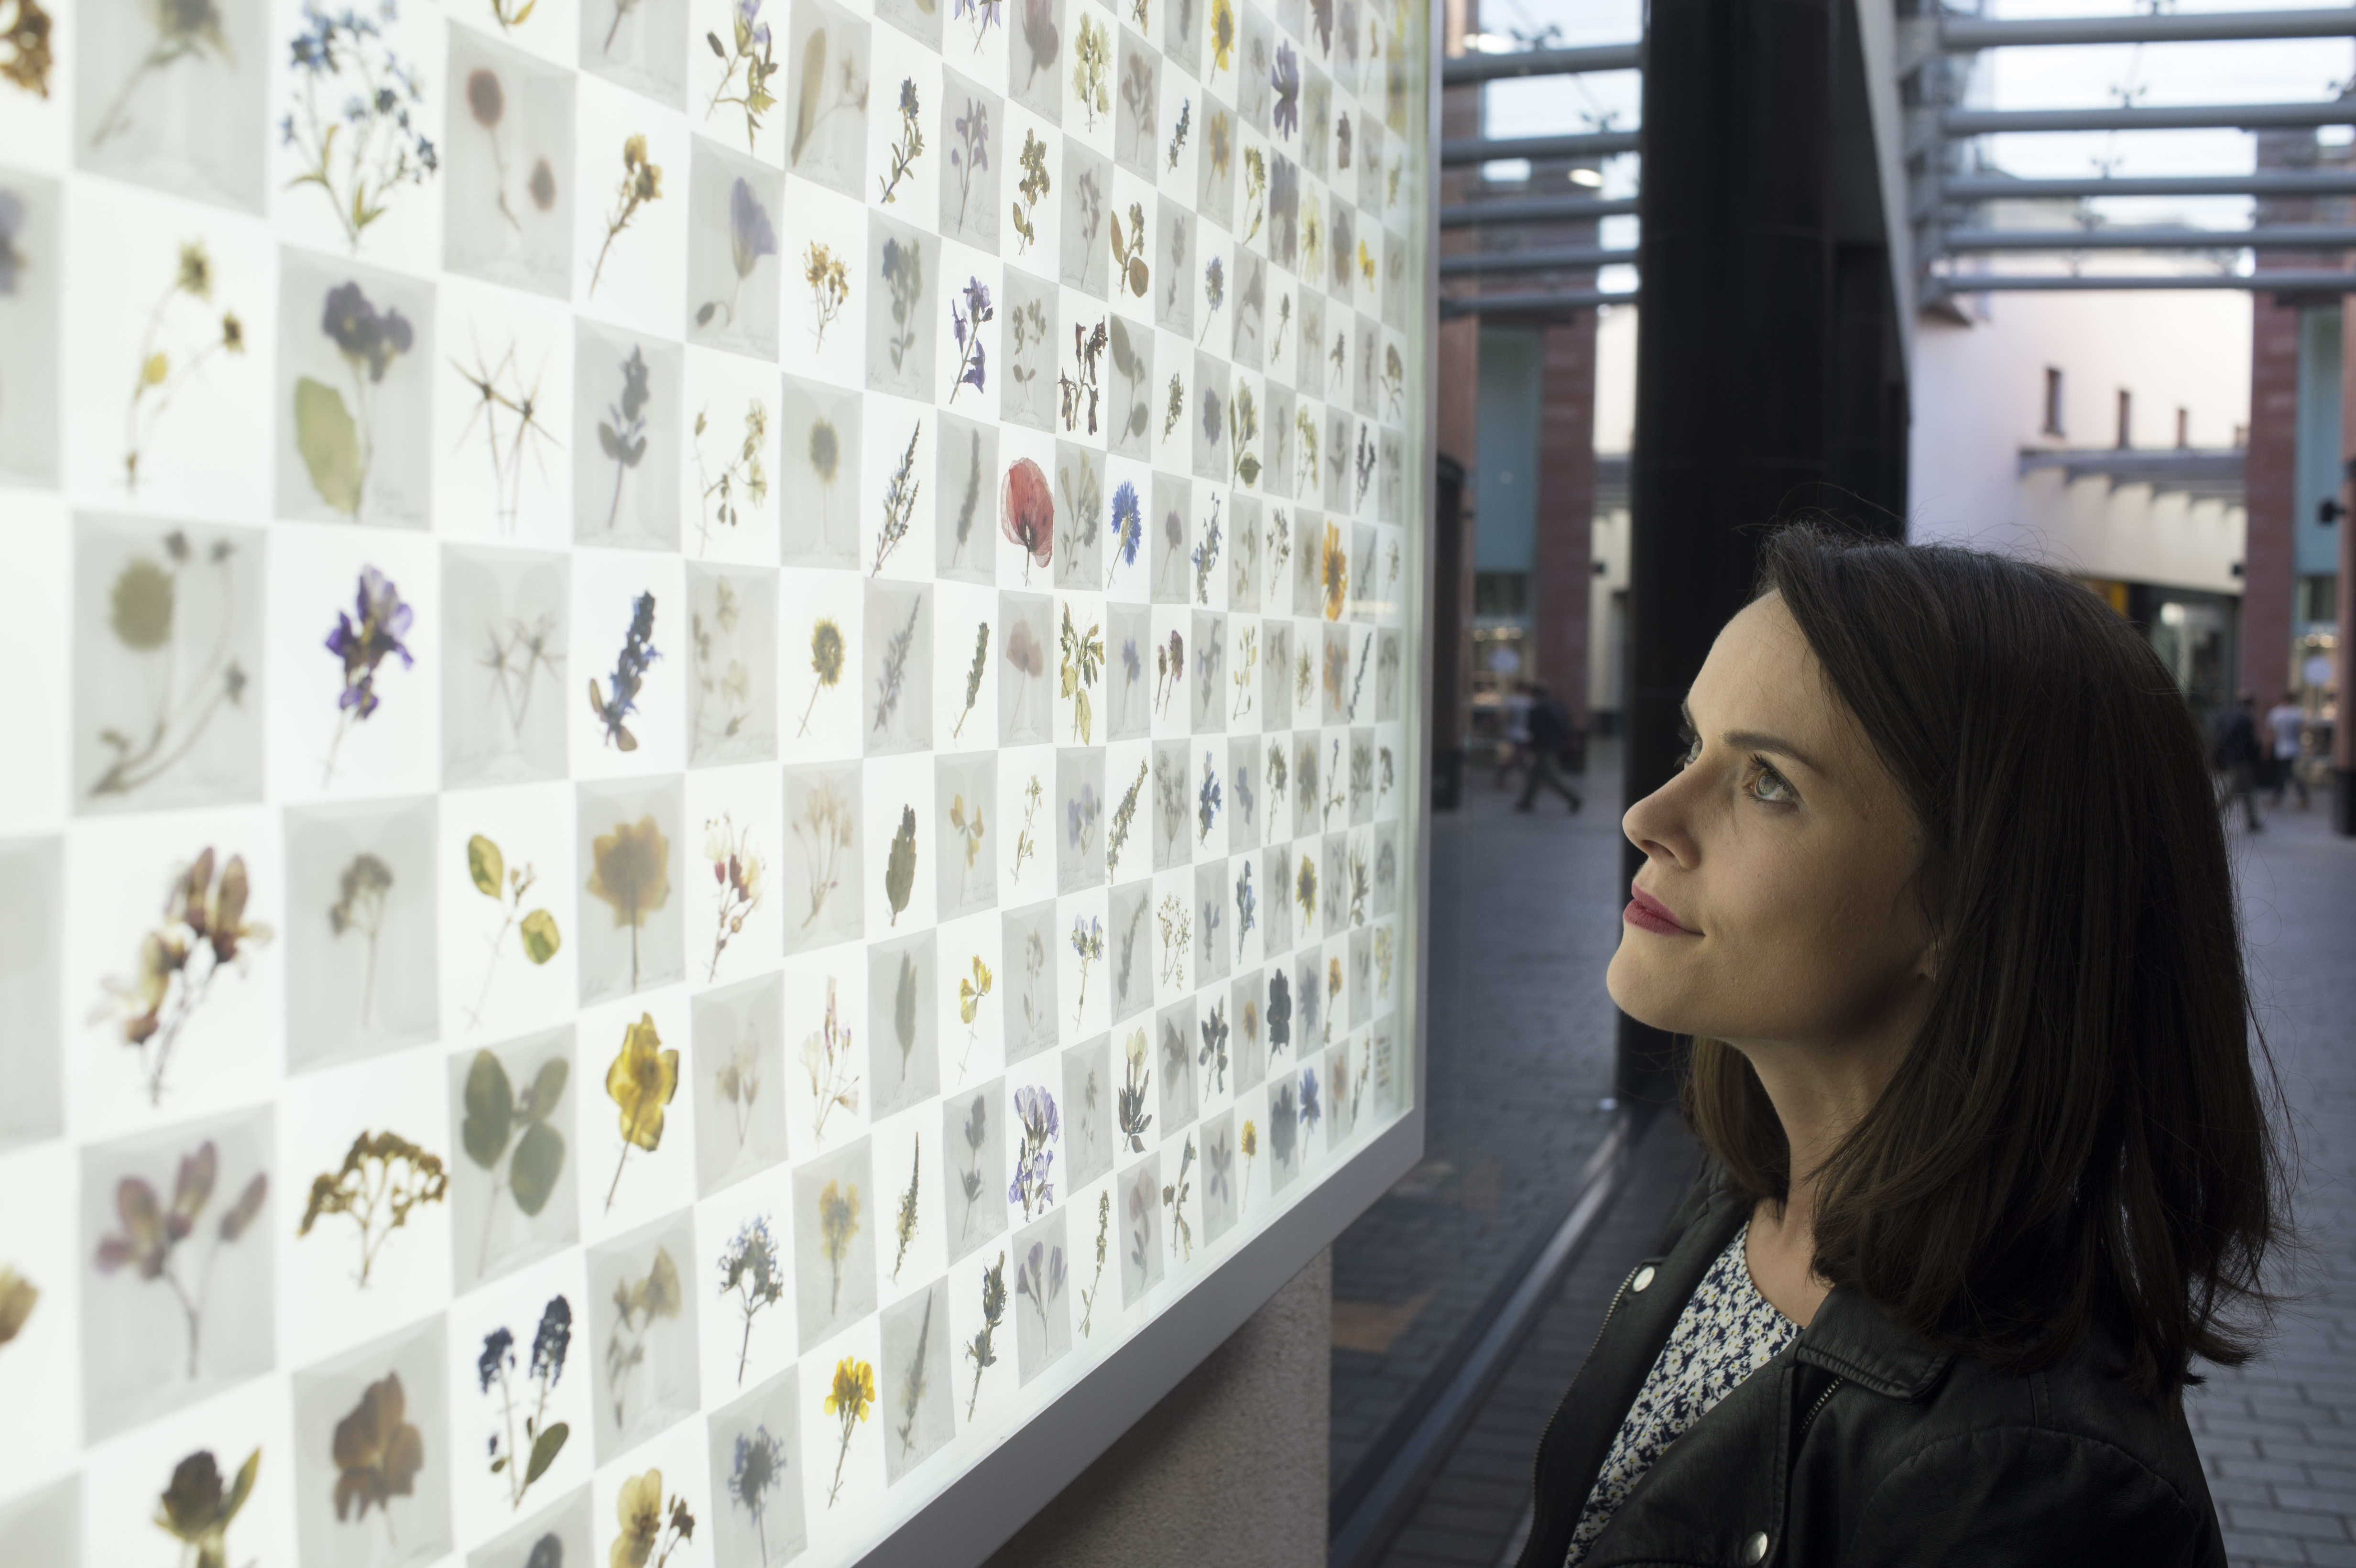 woman looking at a big display of wildlife found in the area surrounding the shopping centre